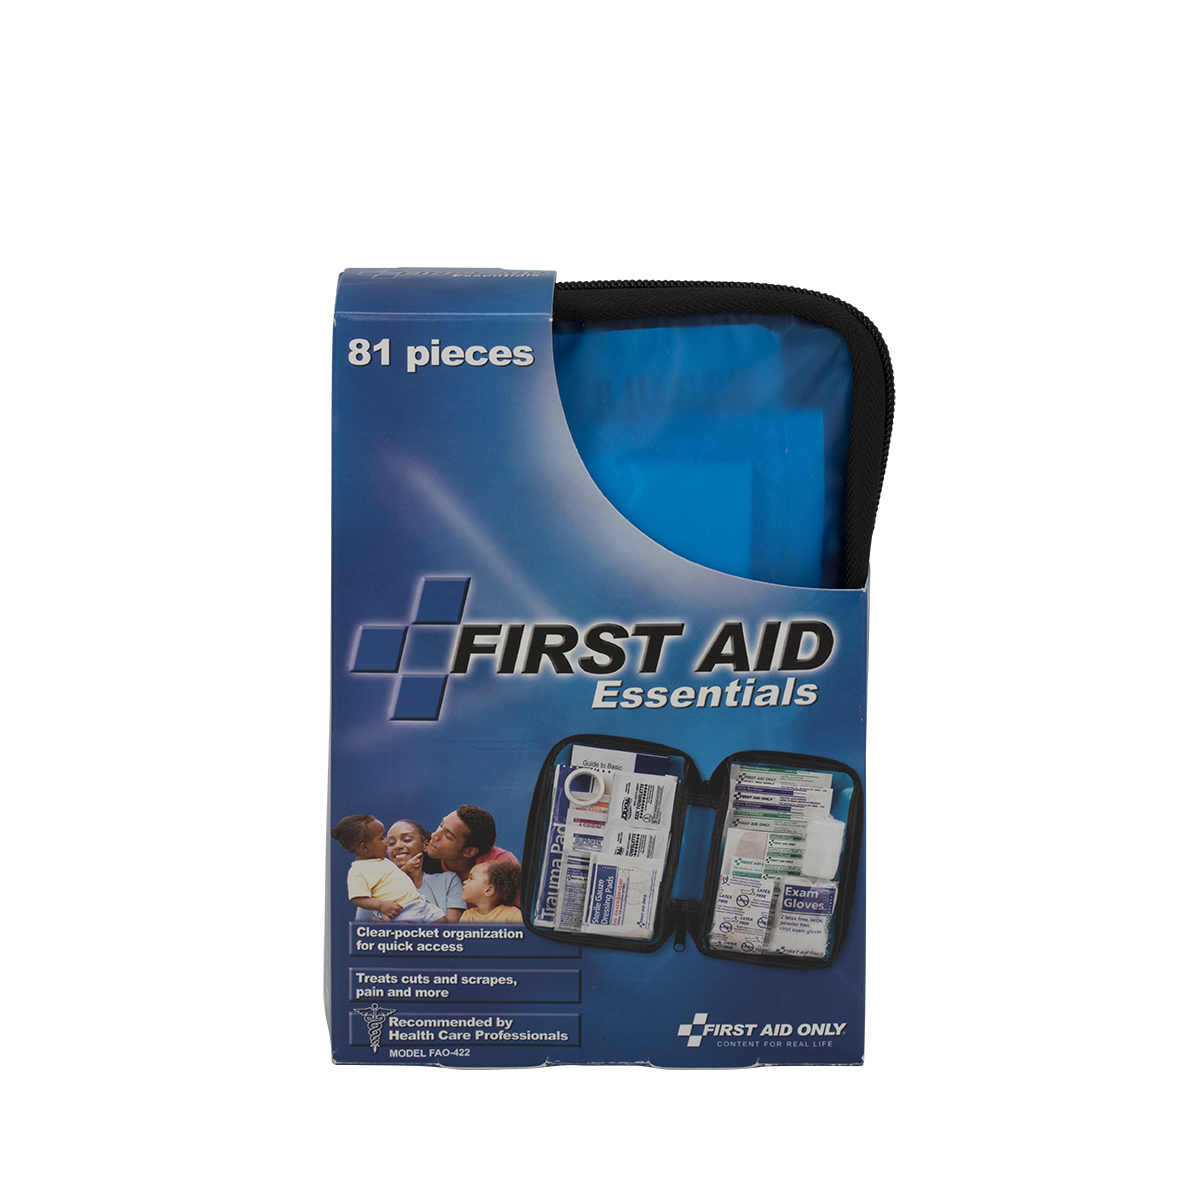 First Aid Only 80 Piece First Aid Kit, Fabric Case by ACME UNITED CORPORATION